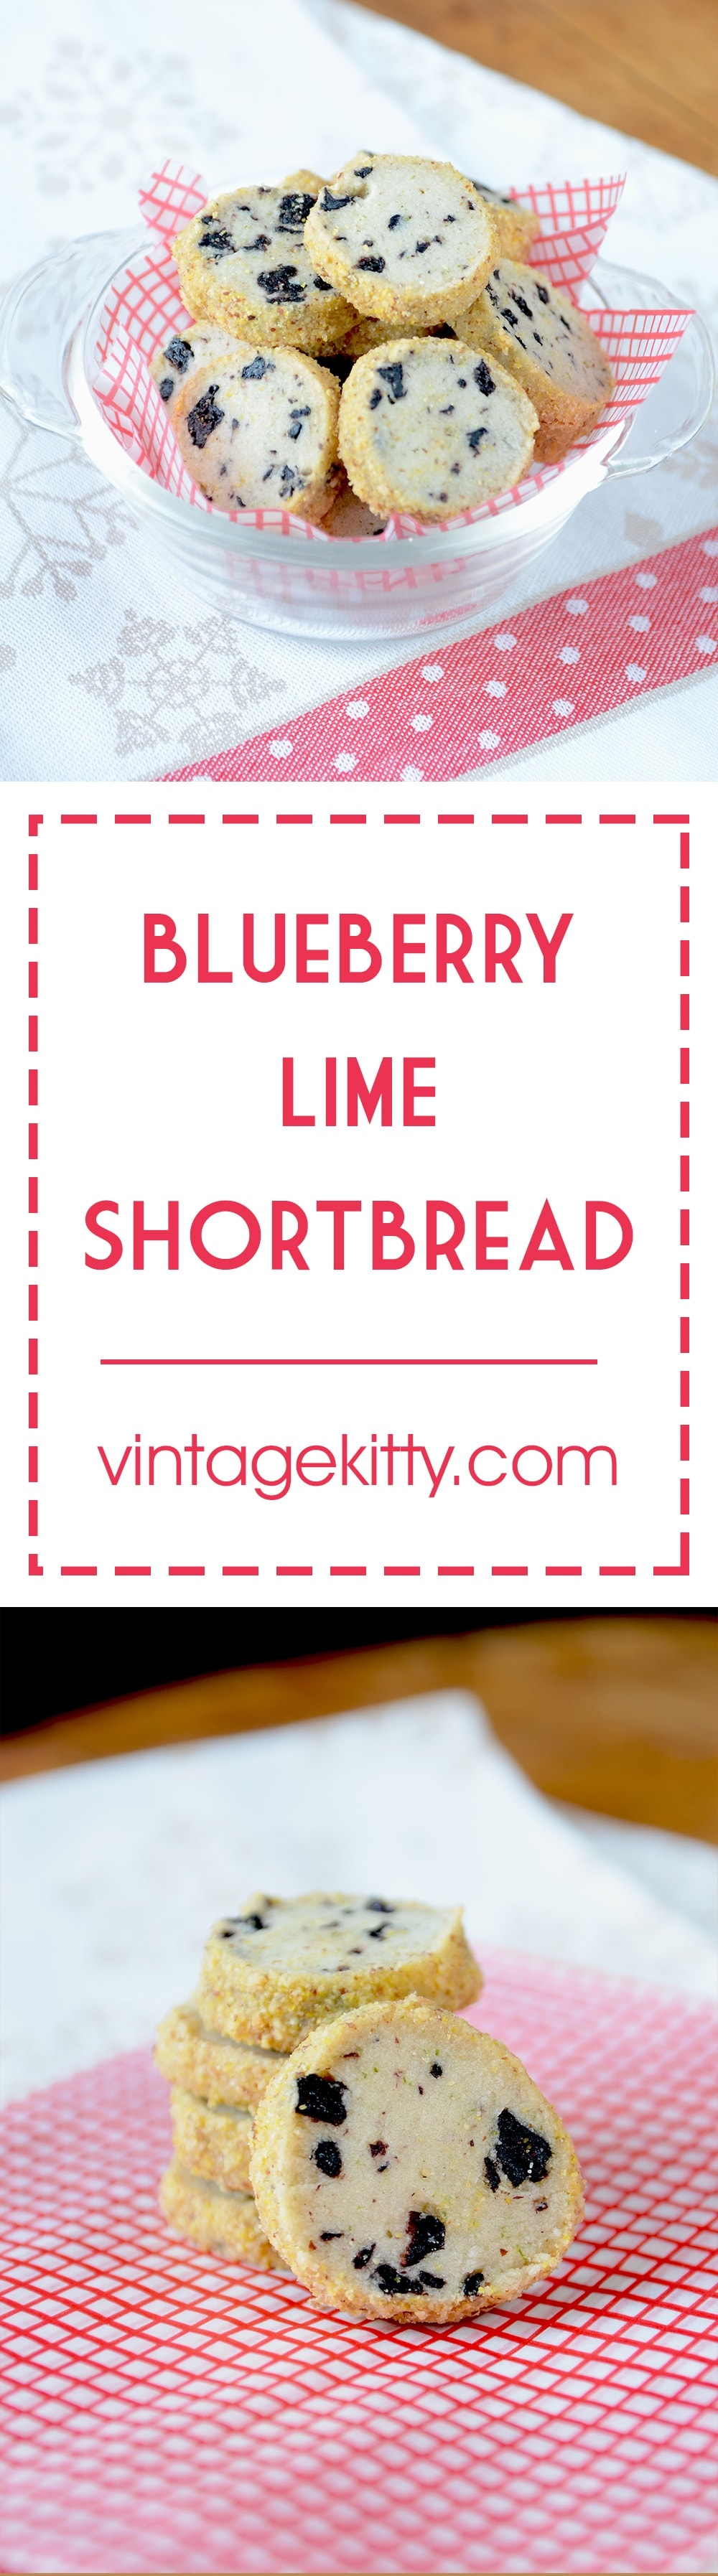 Blueberry Lime Shortbread Pin - Blueberry Lime Shortbread